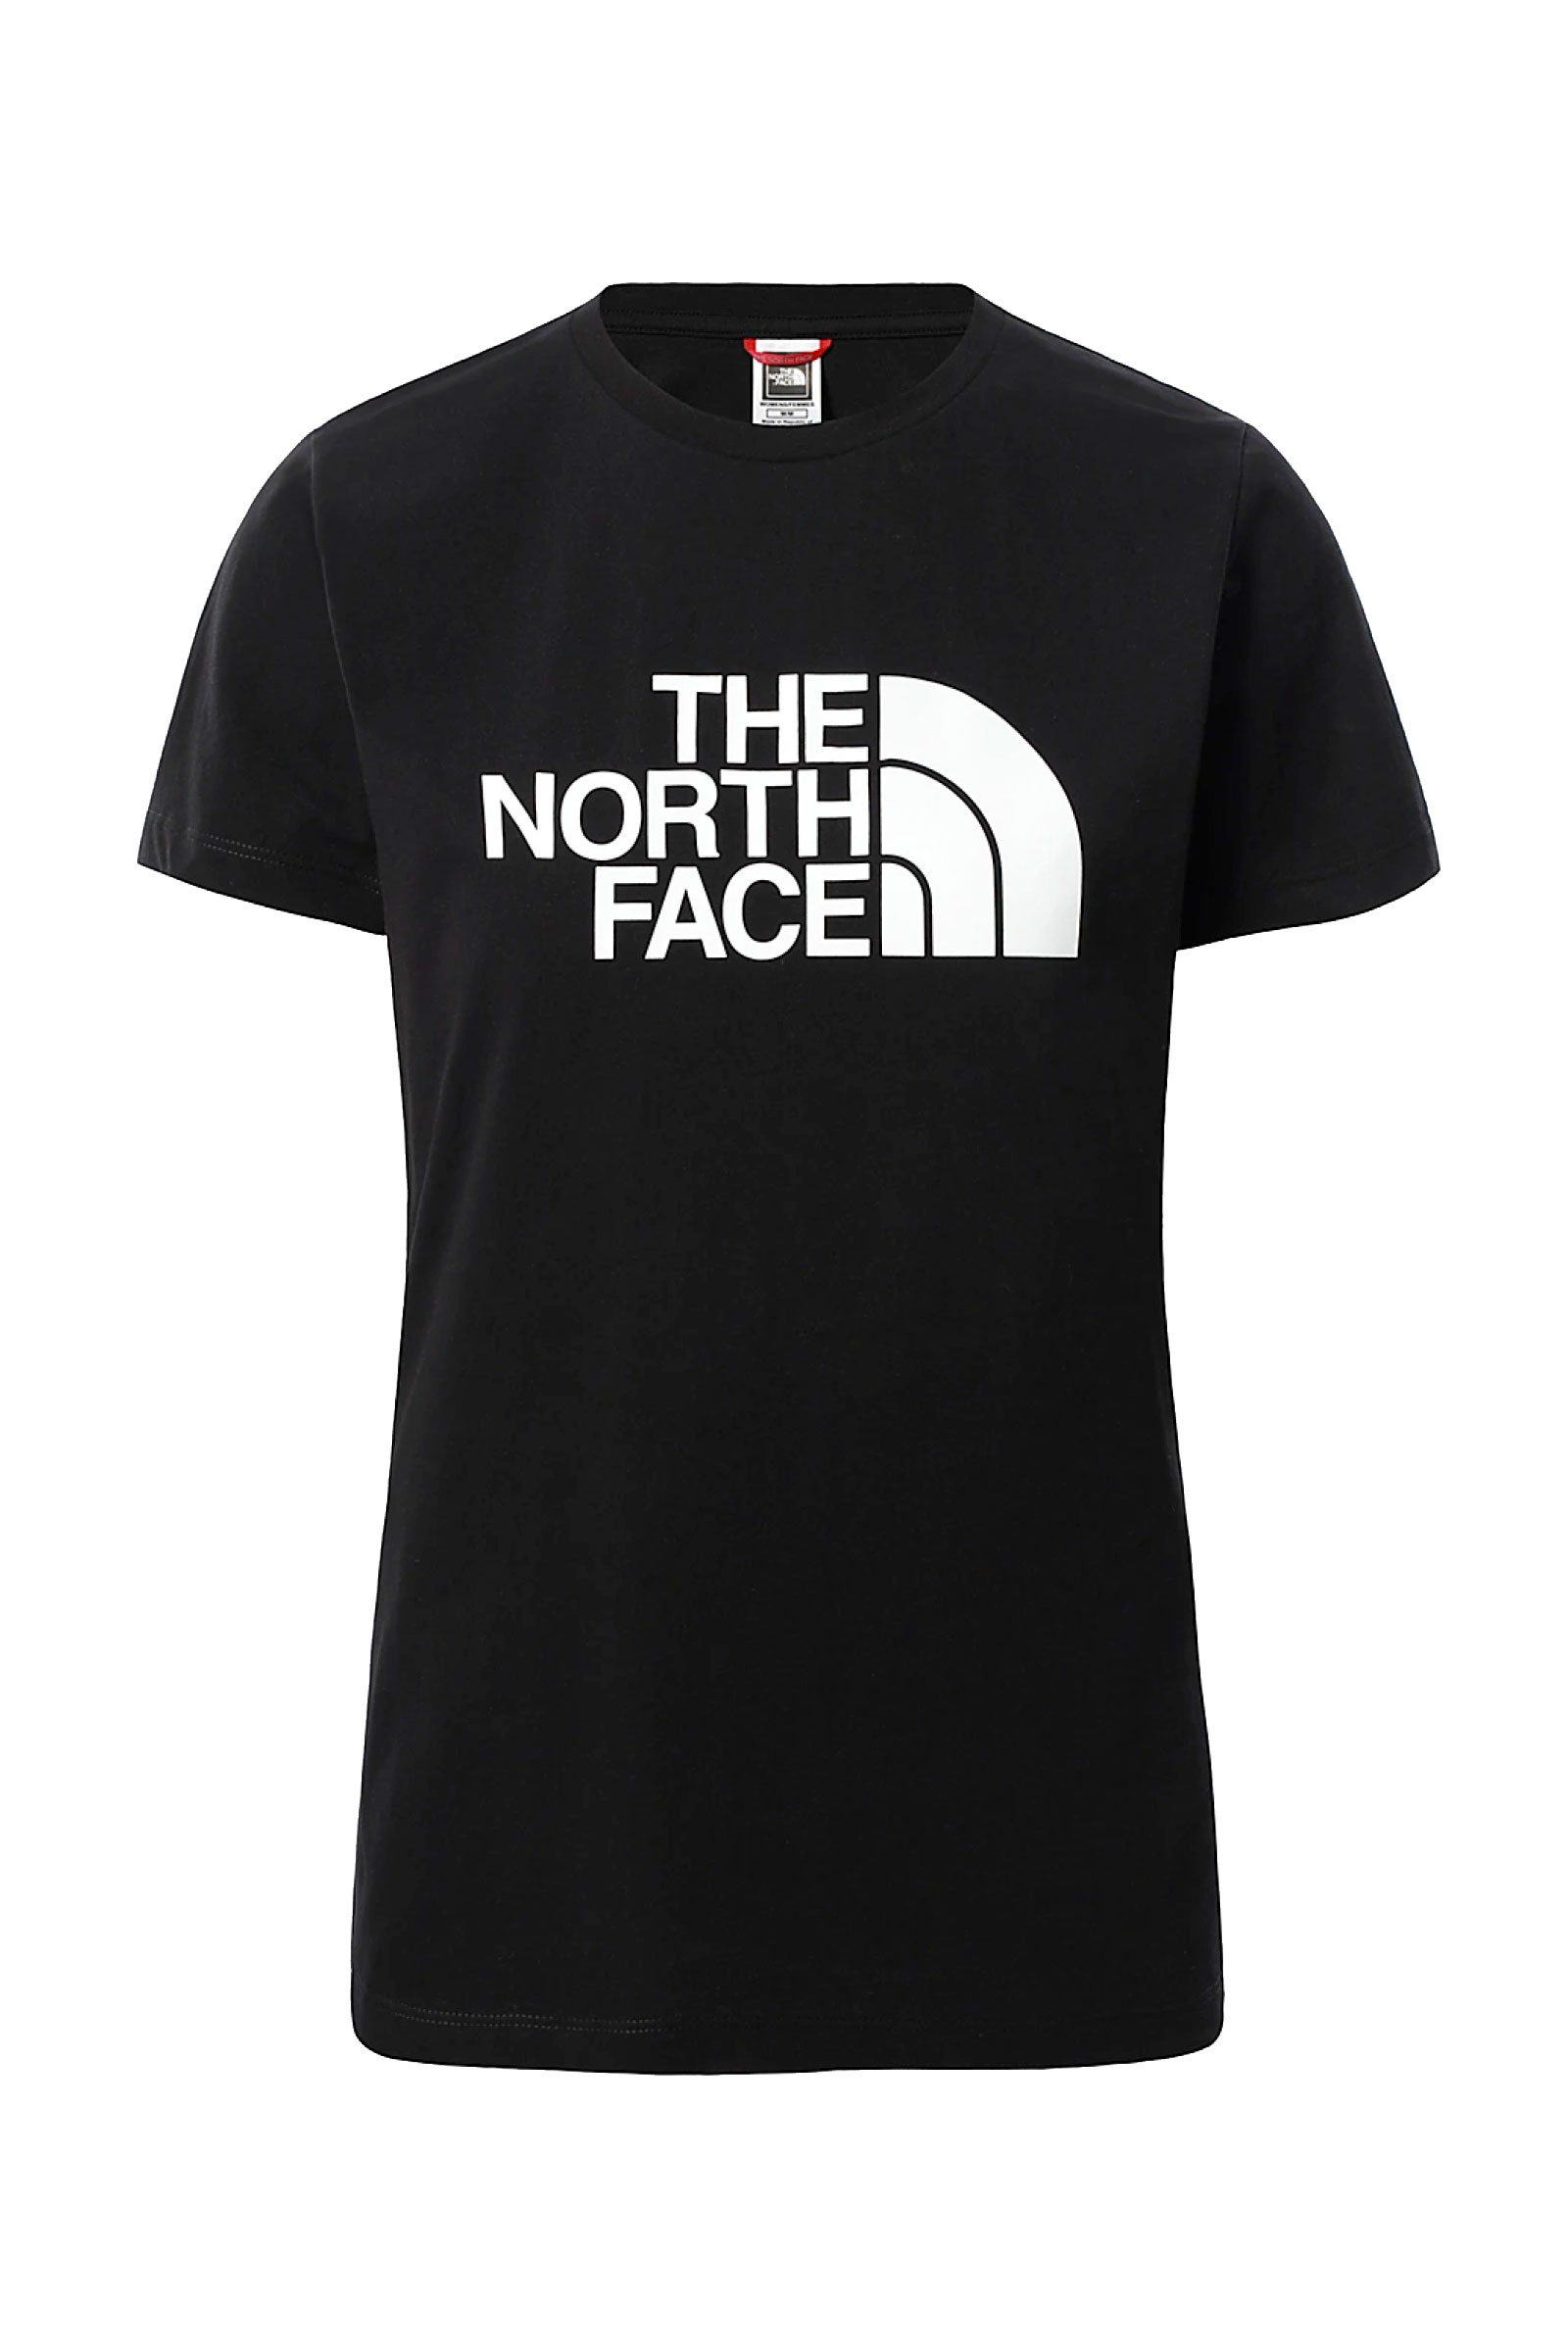 THE NORTH FACE | T-Shirt | NF0A4T1QJK31